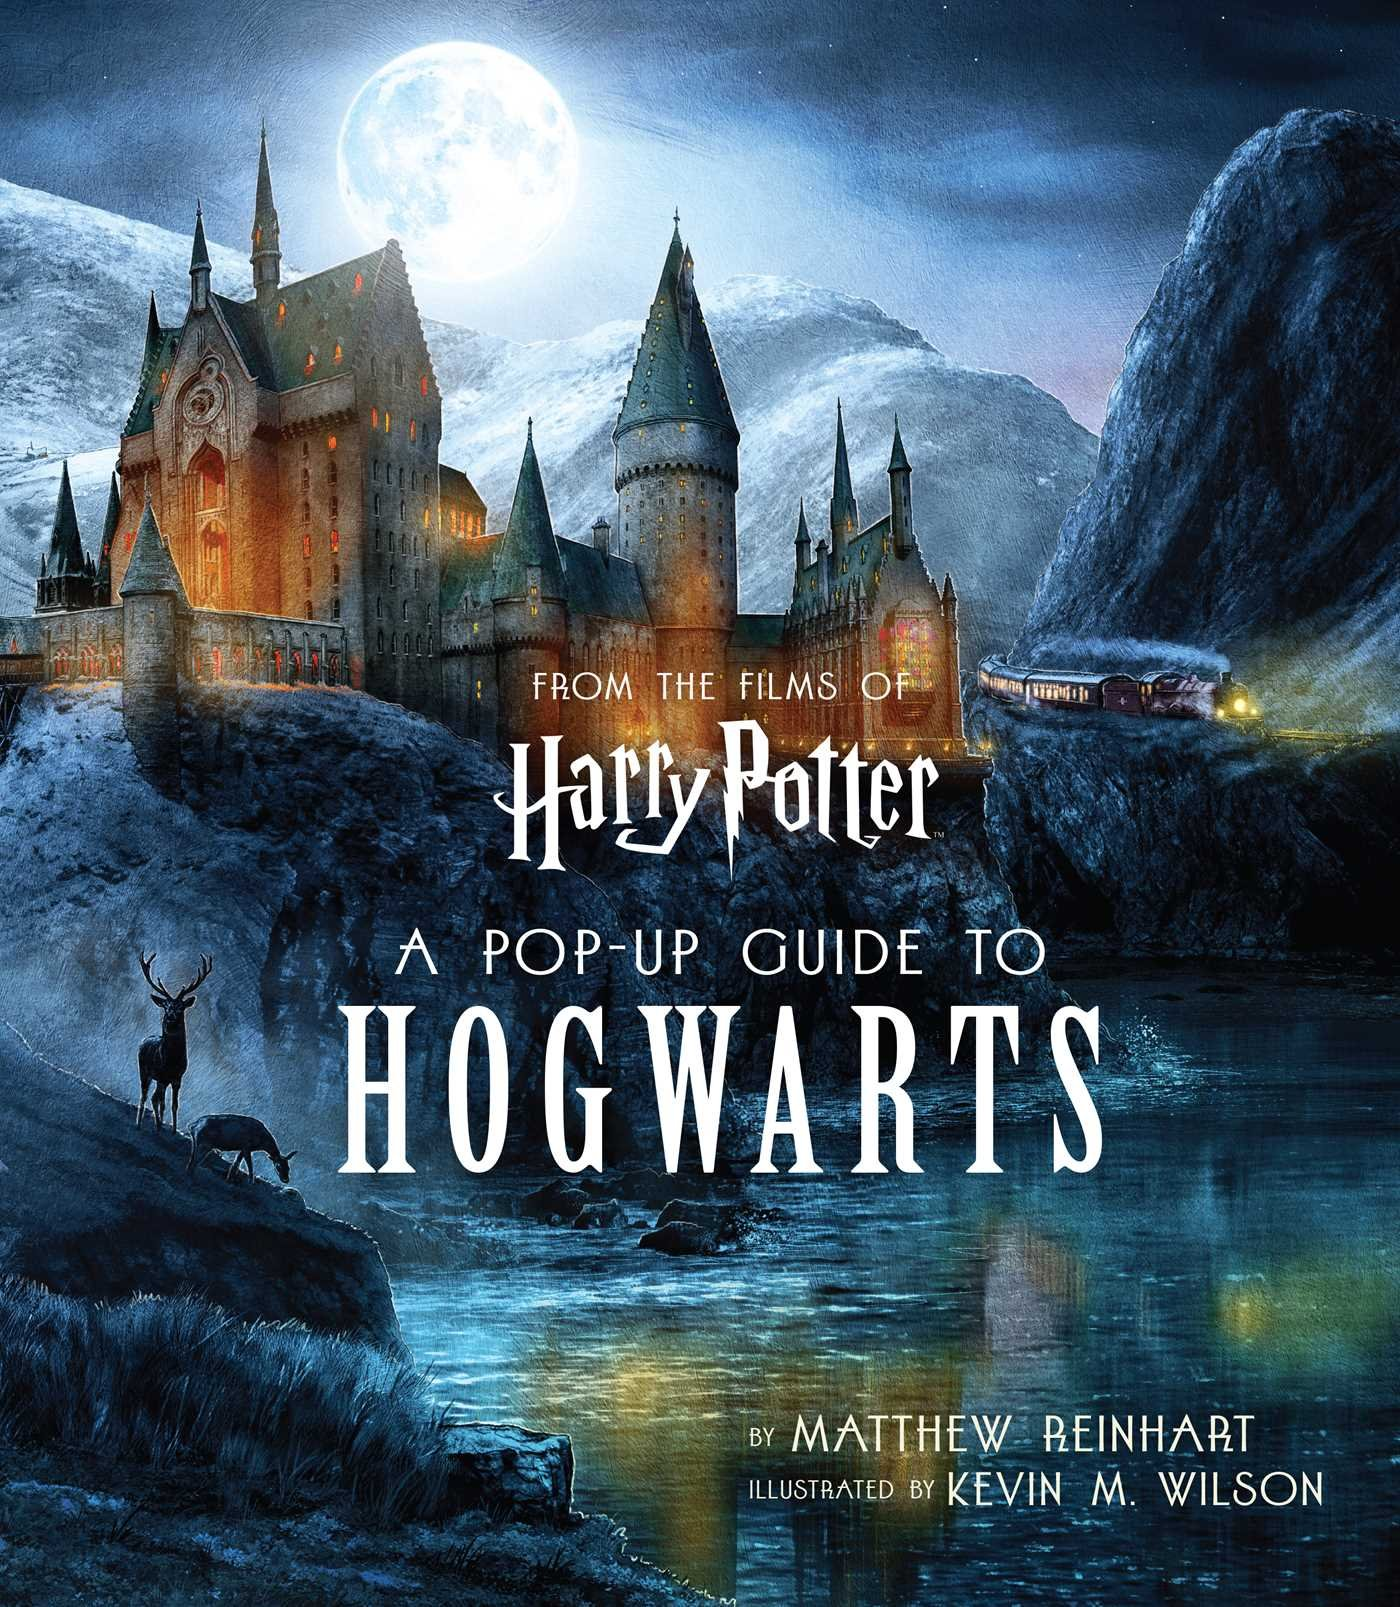 Harry Potter: A Pop-Up Guide to Hogwarts by Kevin Wilson,Matthew Reinhart, ISBN: 9781683834076